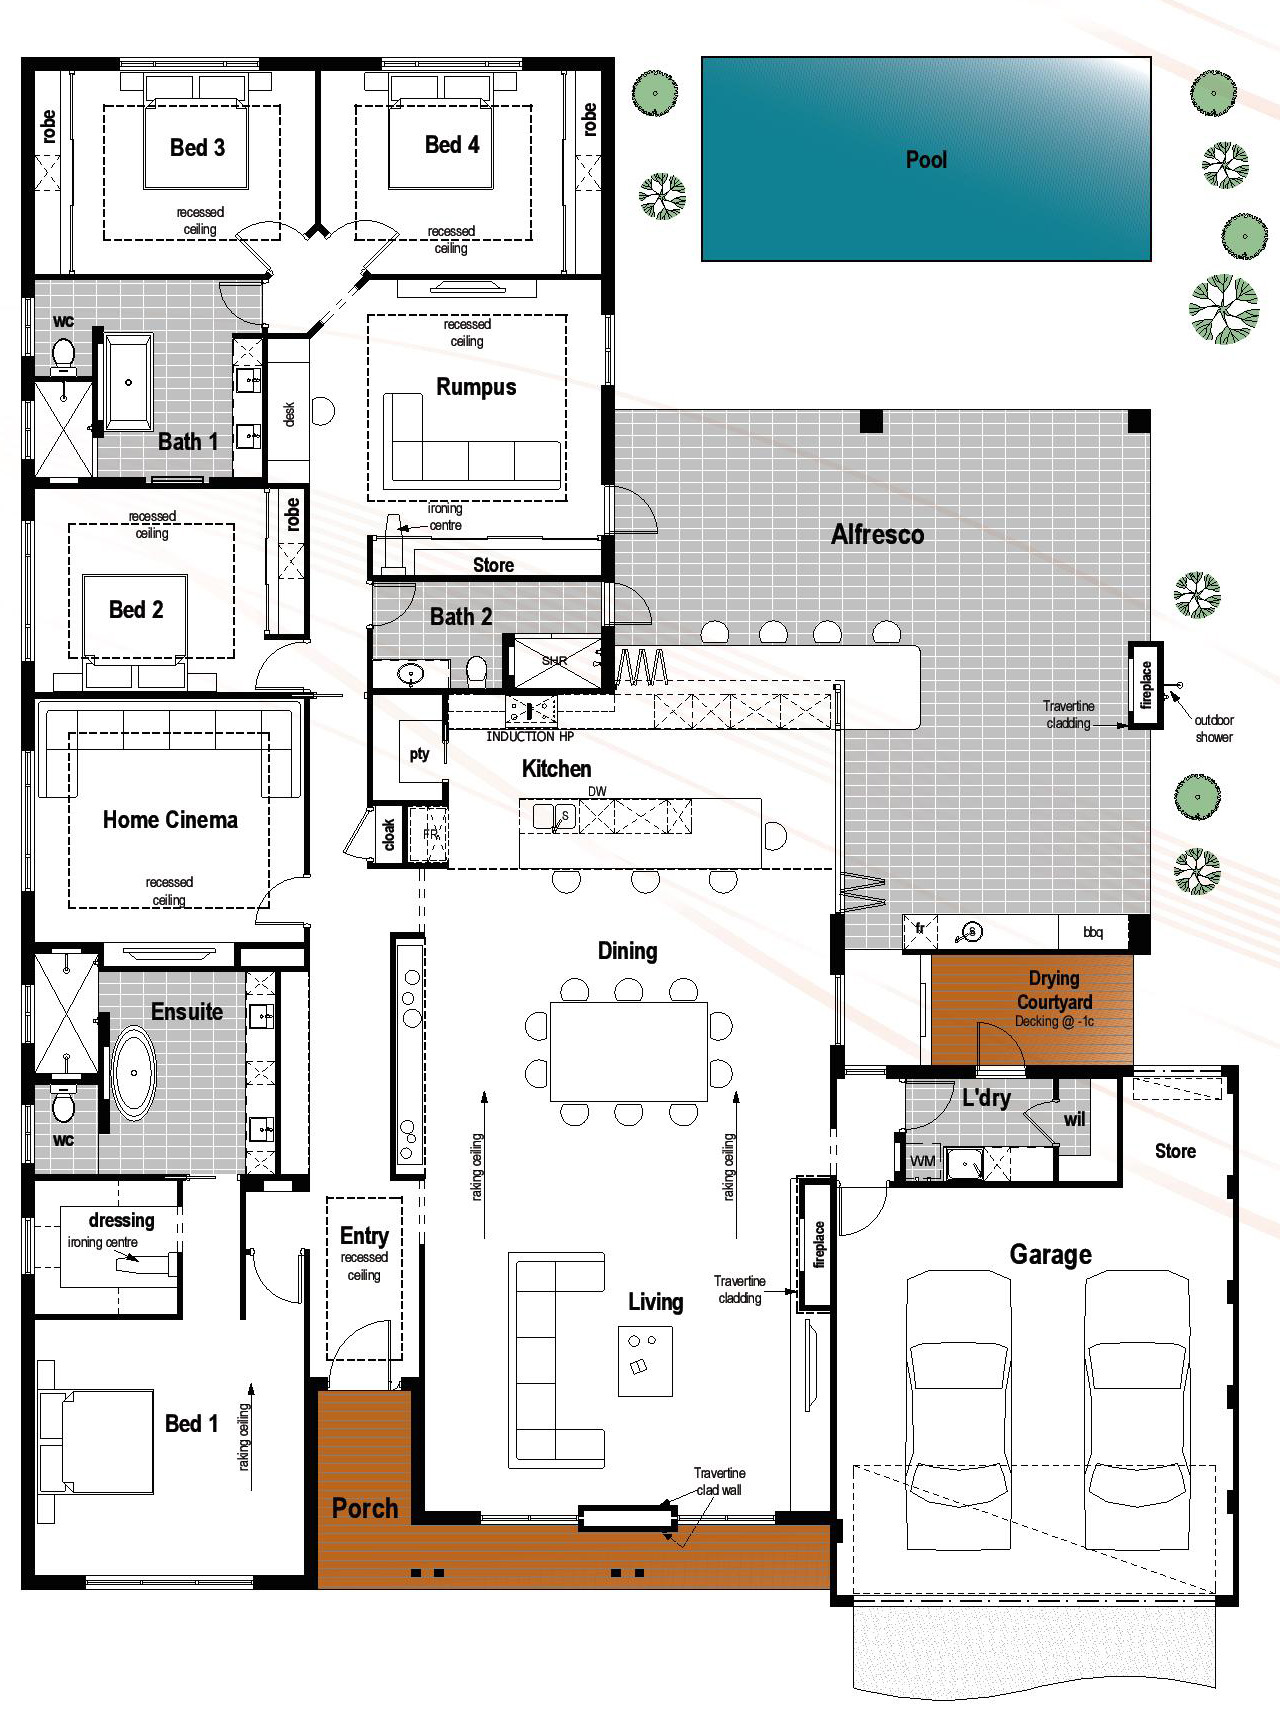 Floor plan friday 4 bedroom 3 bathroom with modern - Single story 4 bedroom modern house plans ...